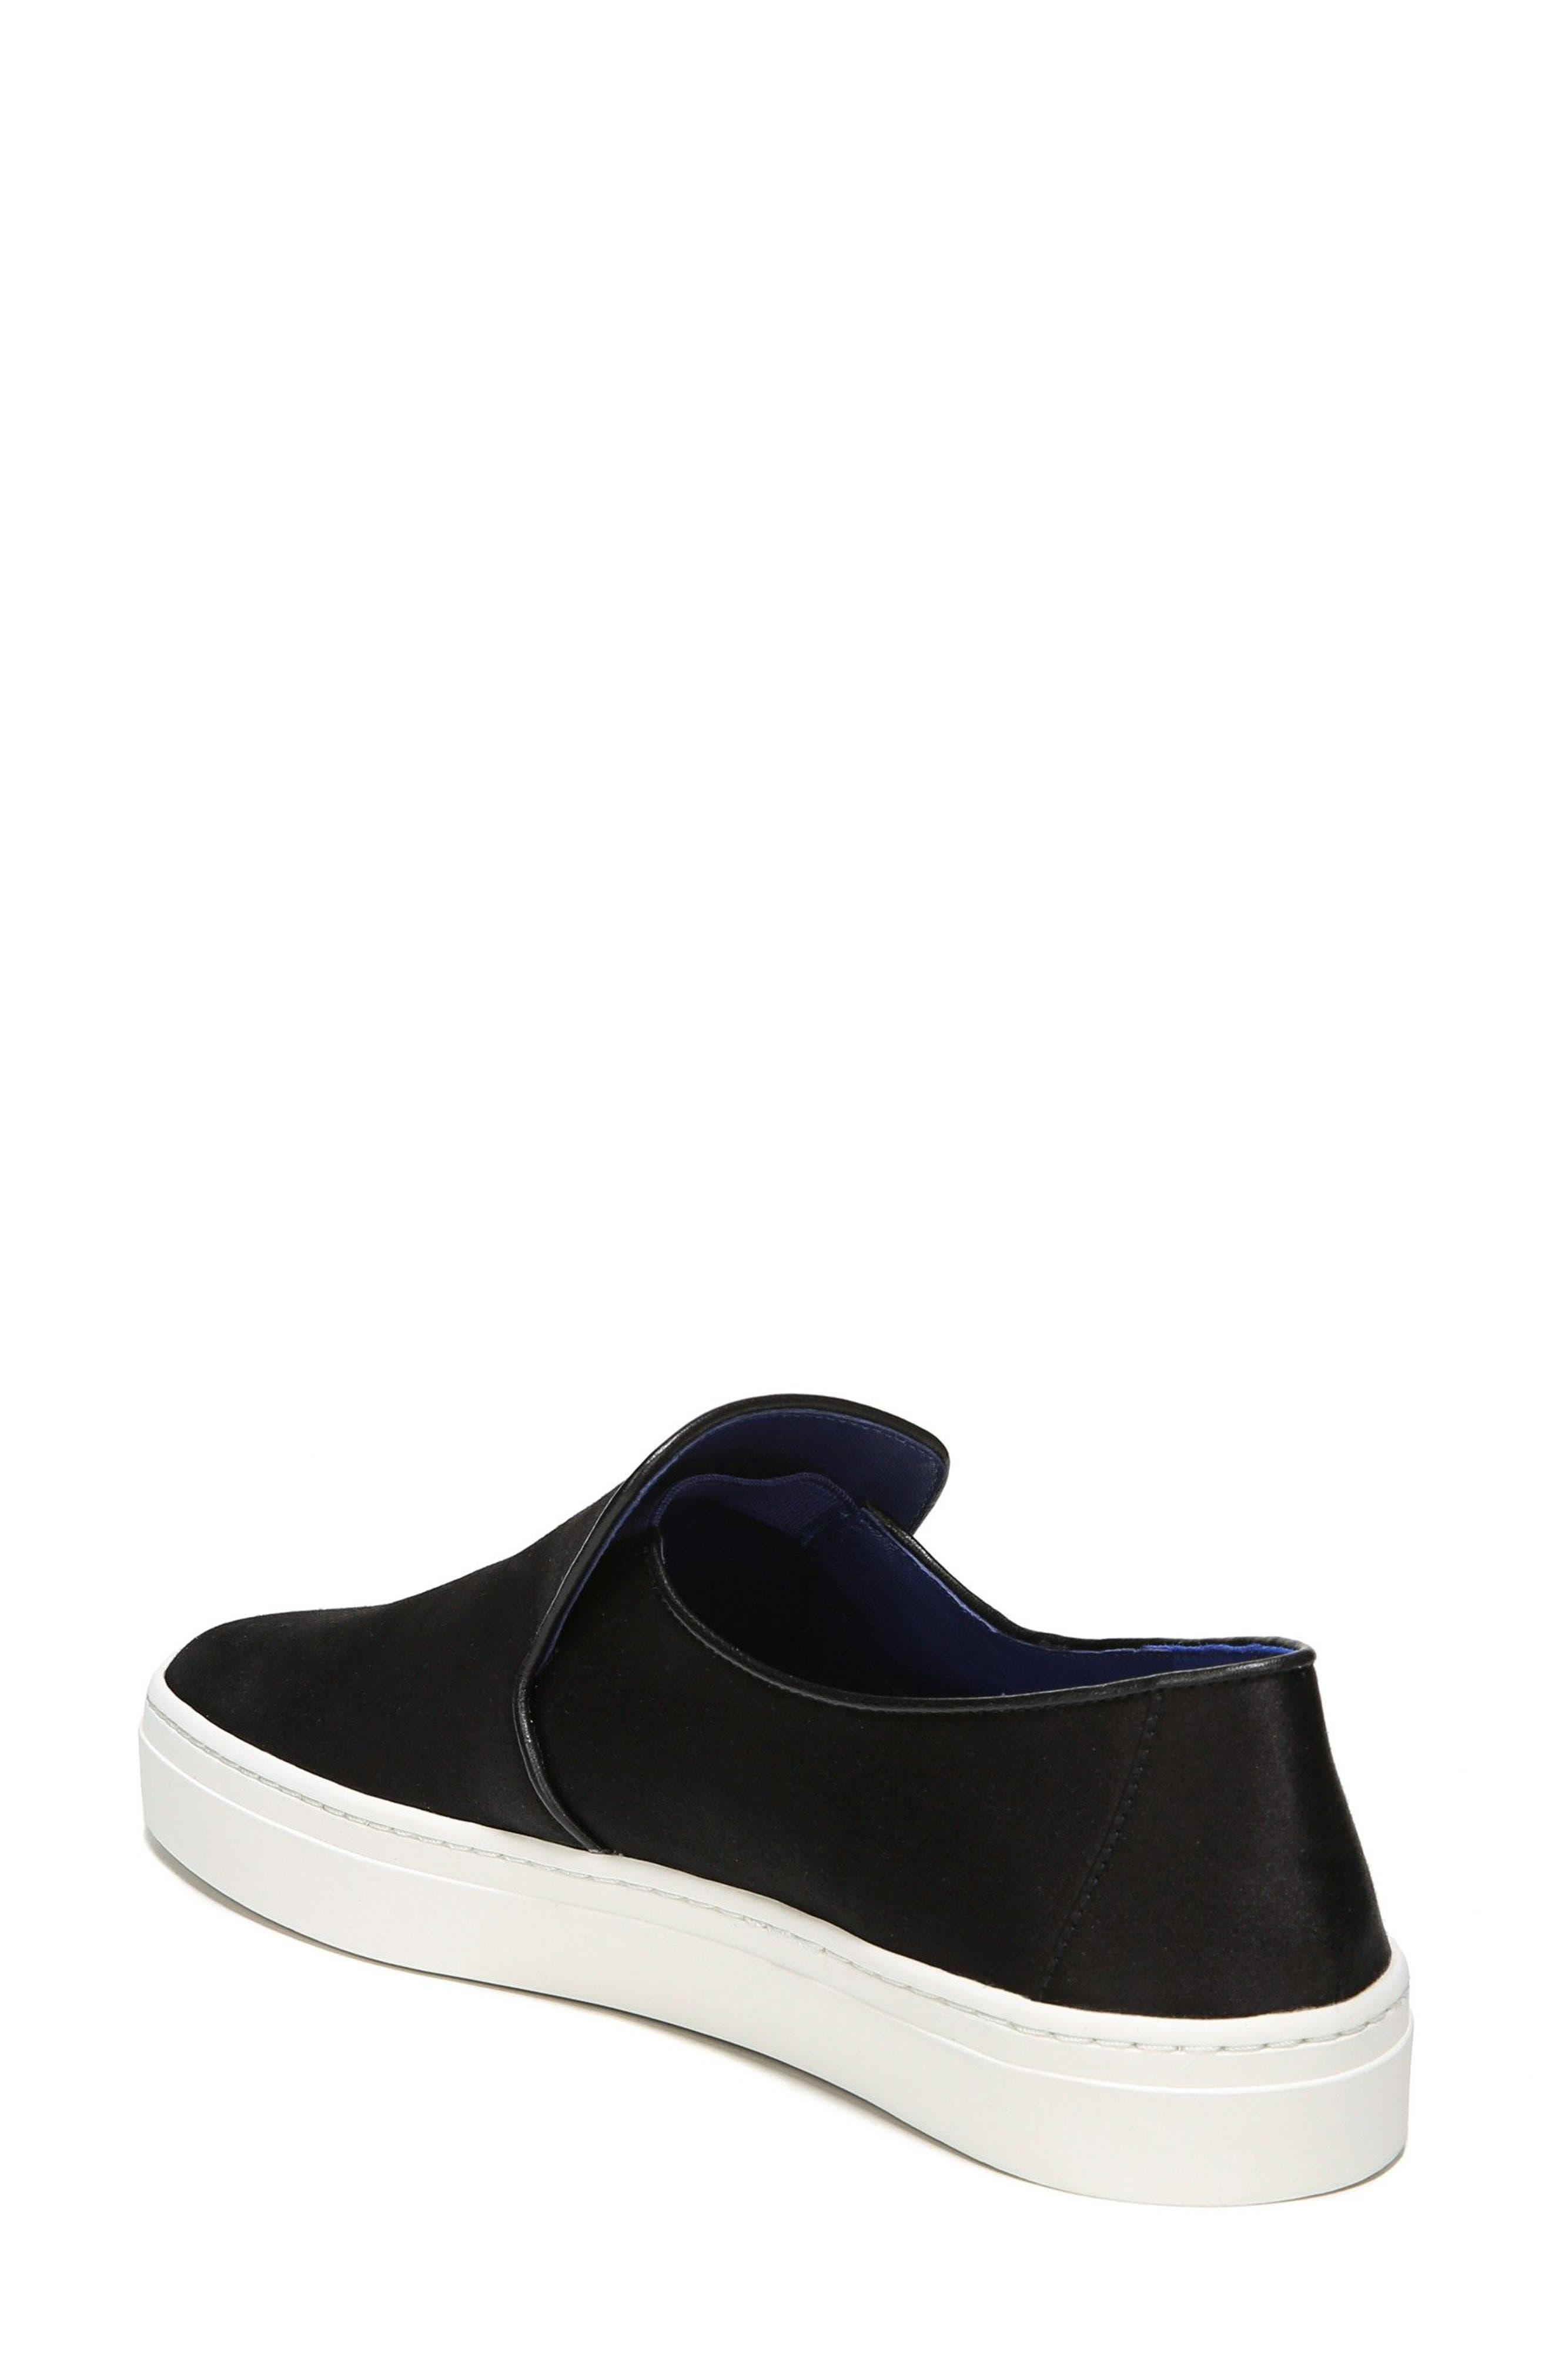 Alternate Image 2  - Diane von Furstenberg Budapest Slip-On Sneaker (Women)